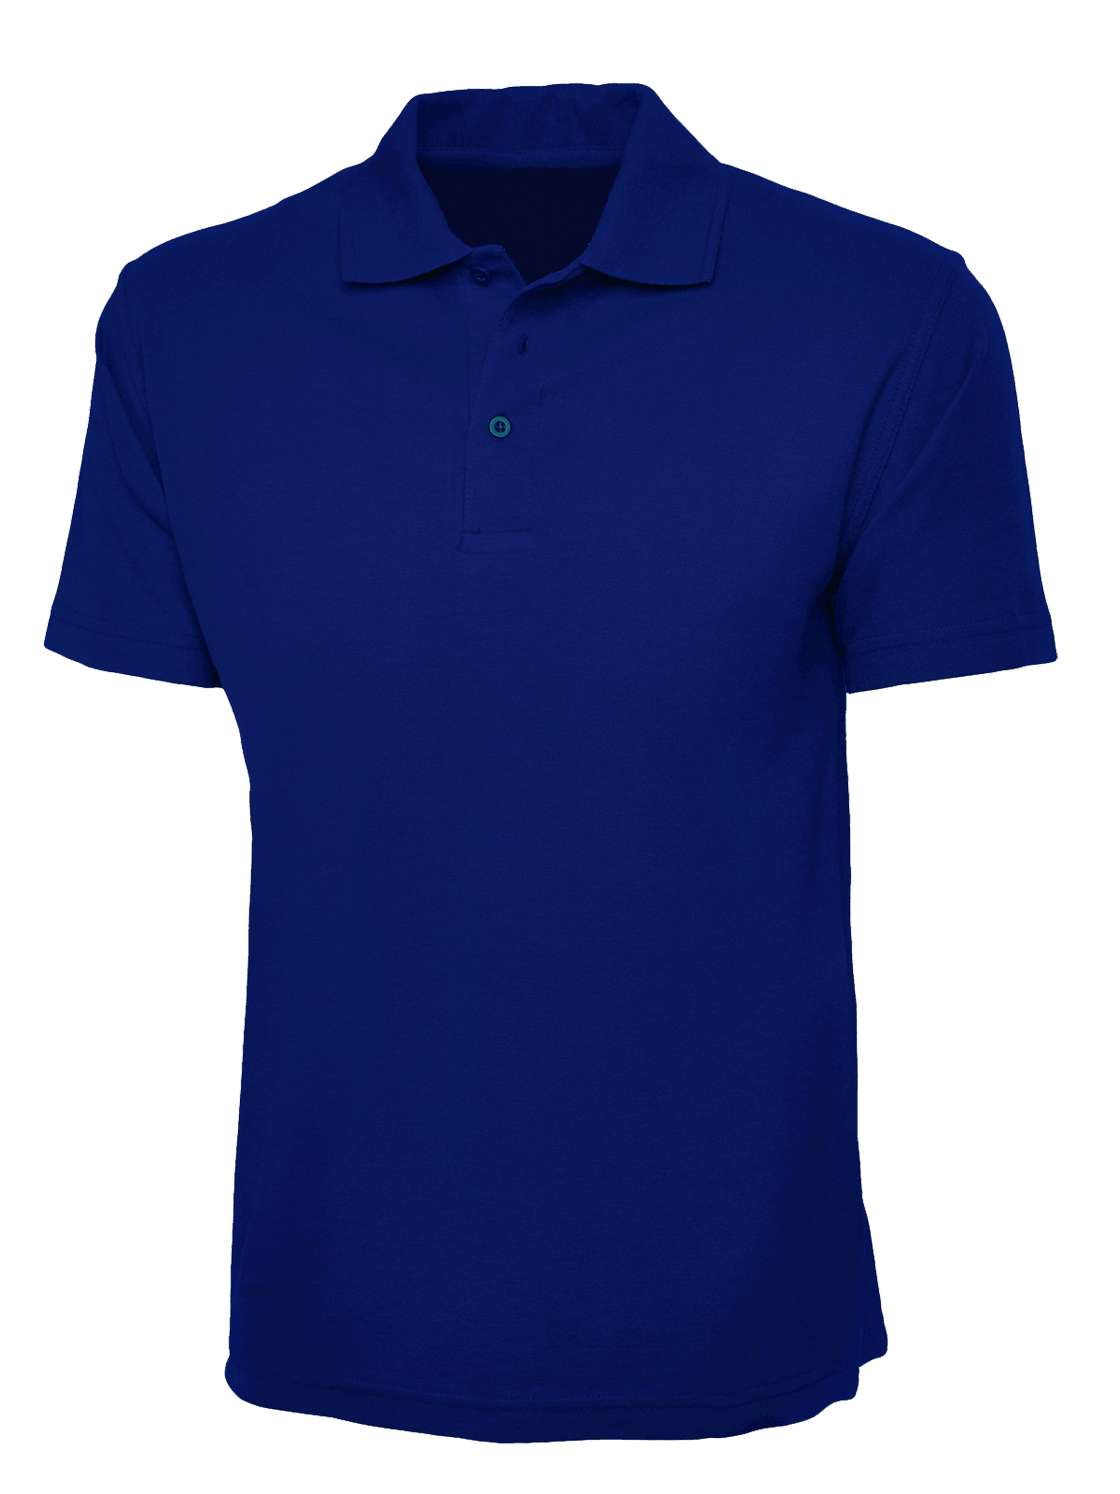 Every fan you know can be decked out in a new Duke Blue Devils Polo, because our sizes range from Duke Big and Tall to Duke Kids Apparel and Duke Women's downiloadojg.gq you want to show up to the game in something more than a Duke Jerseys, you'll want to shop FansEdge and our selection of Duke Golf Shirts and Polos.